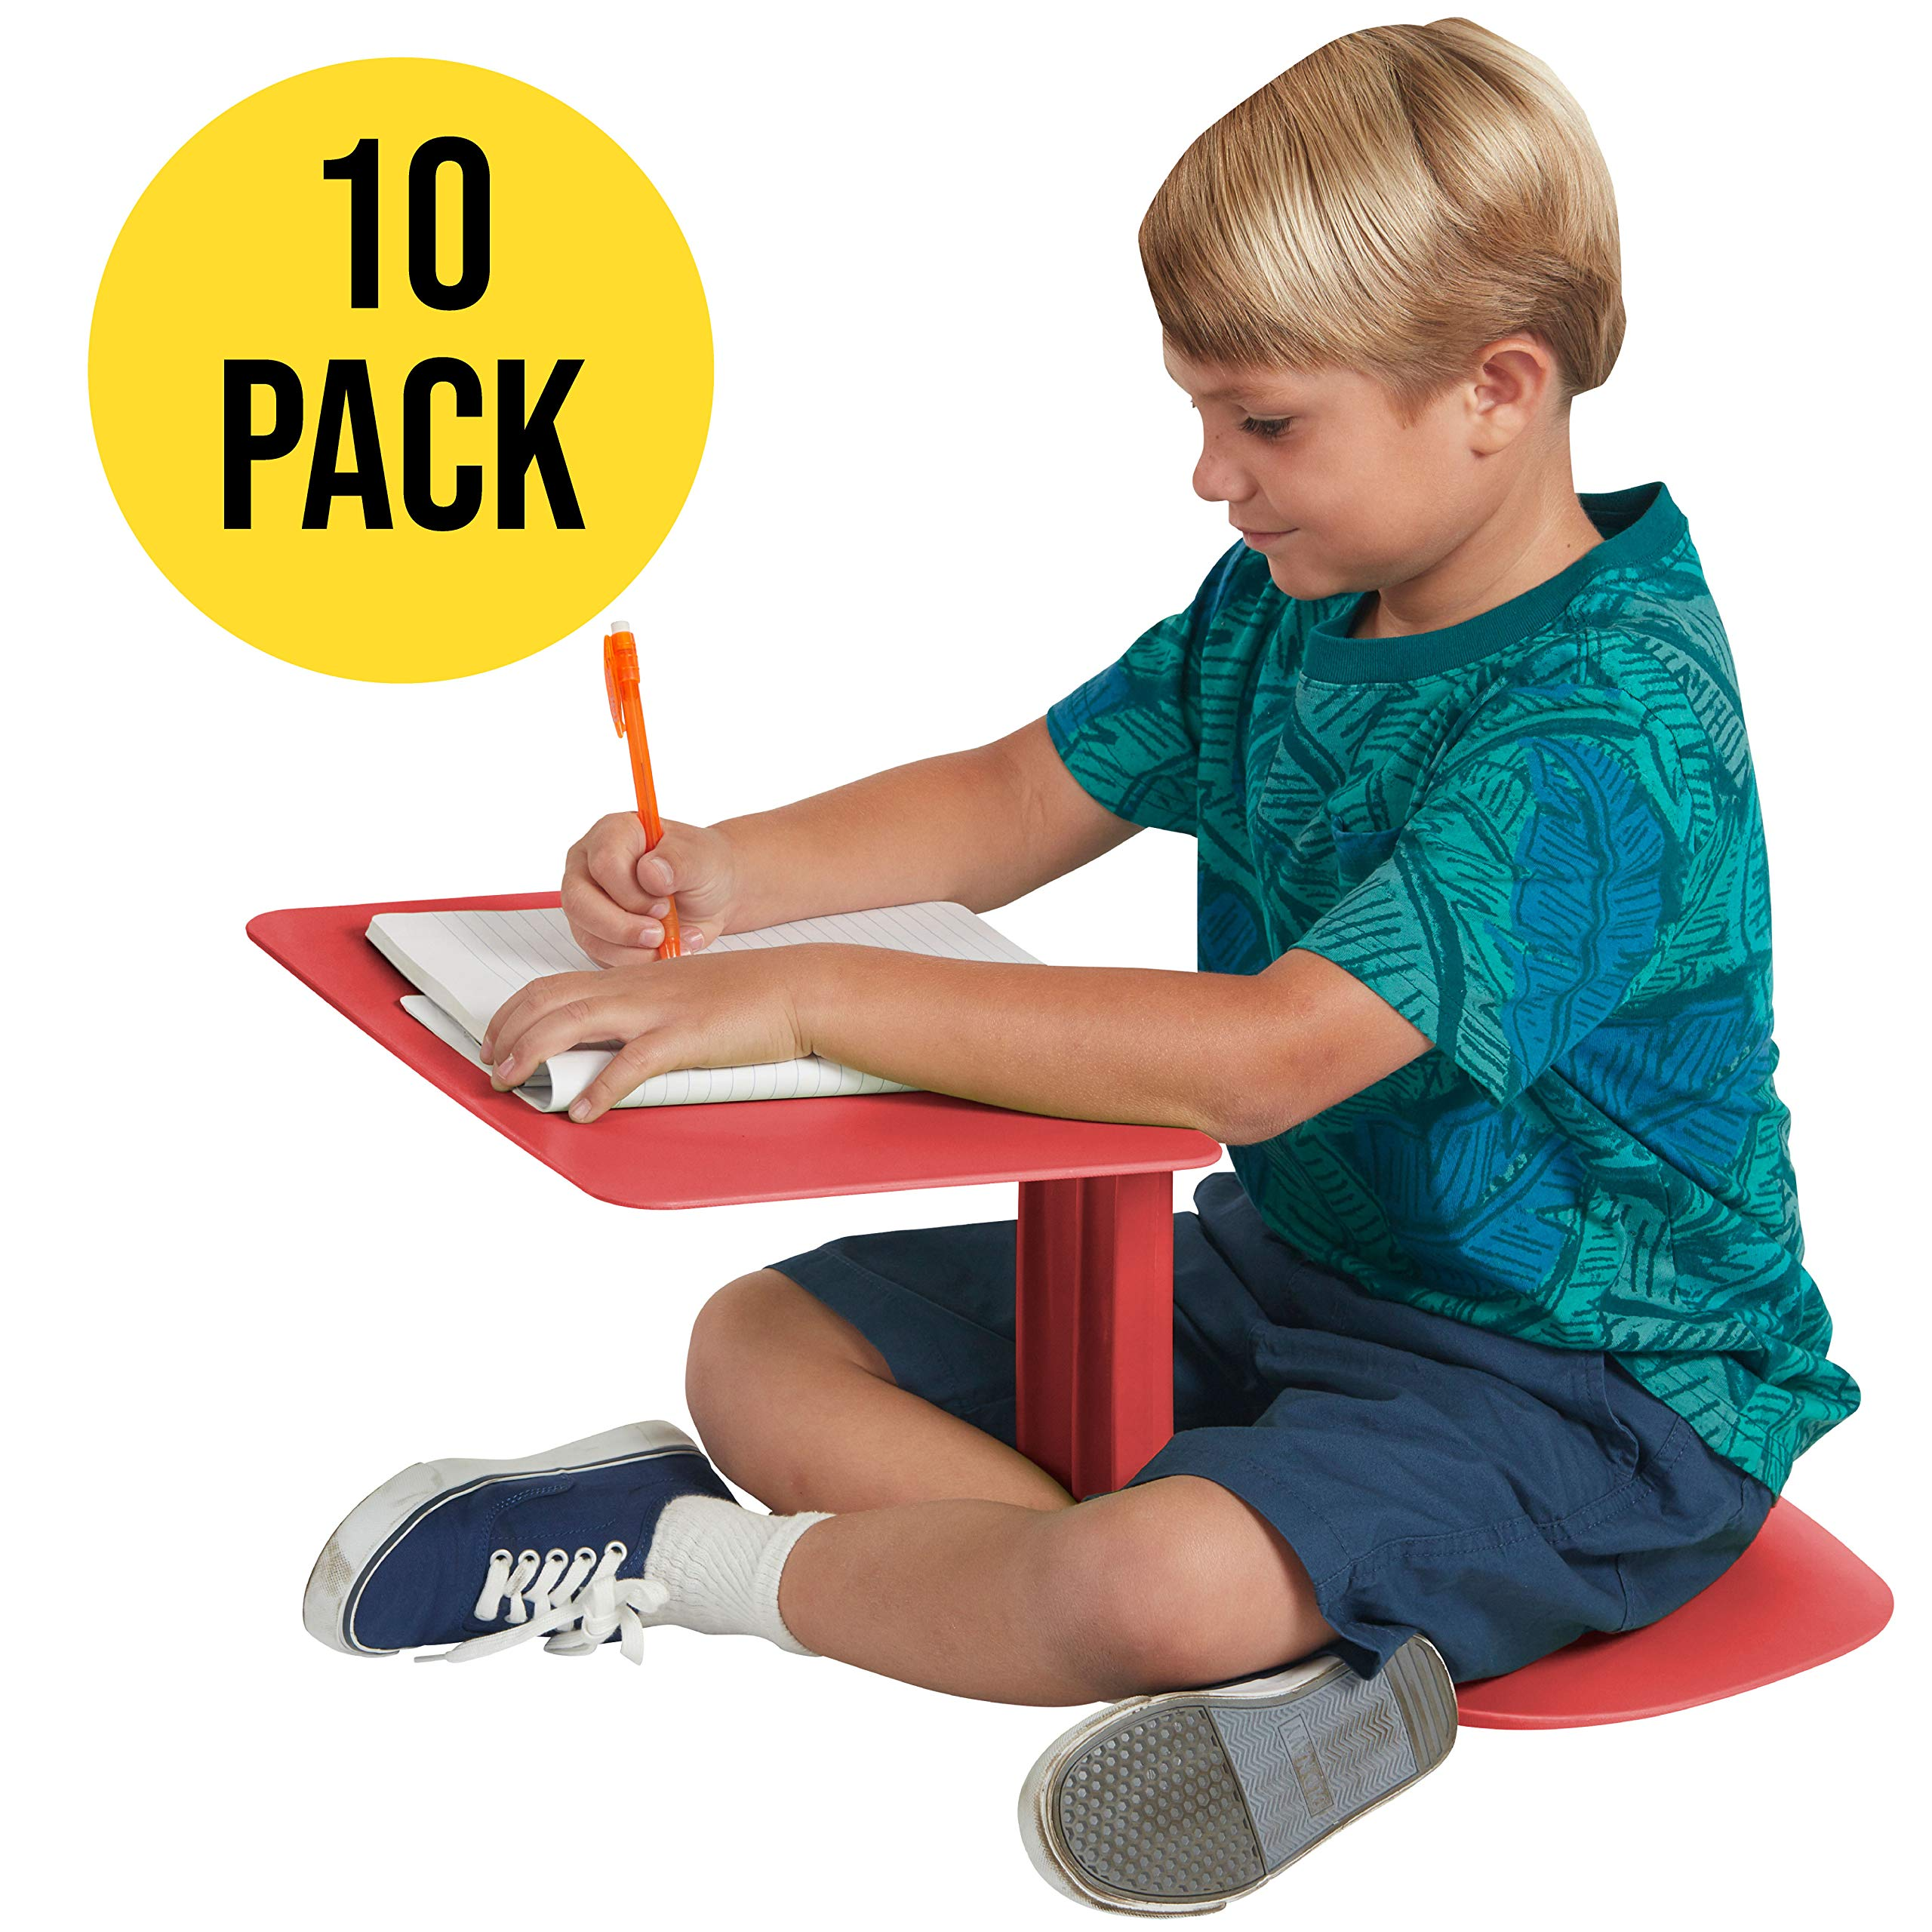 ECR4Kids The Surf - Portable Lap Desk/Laptop Stand/Writing Table, Red (10-Pack) by ECR4Kids